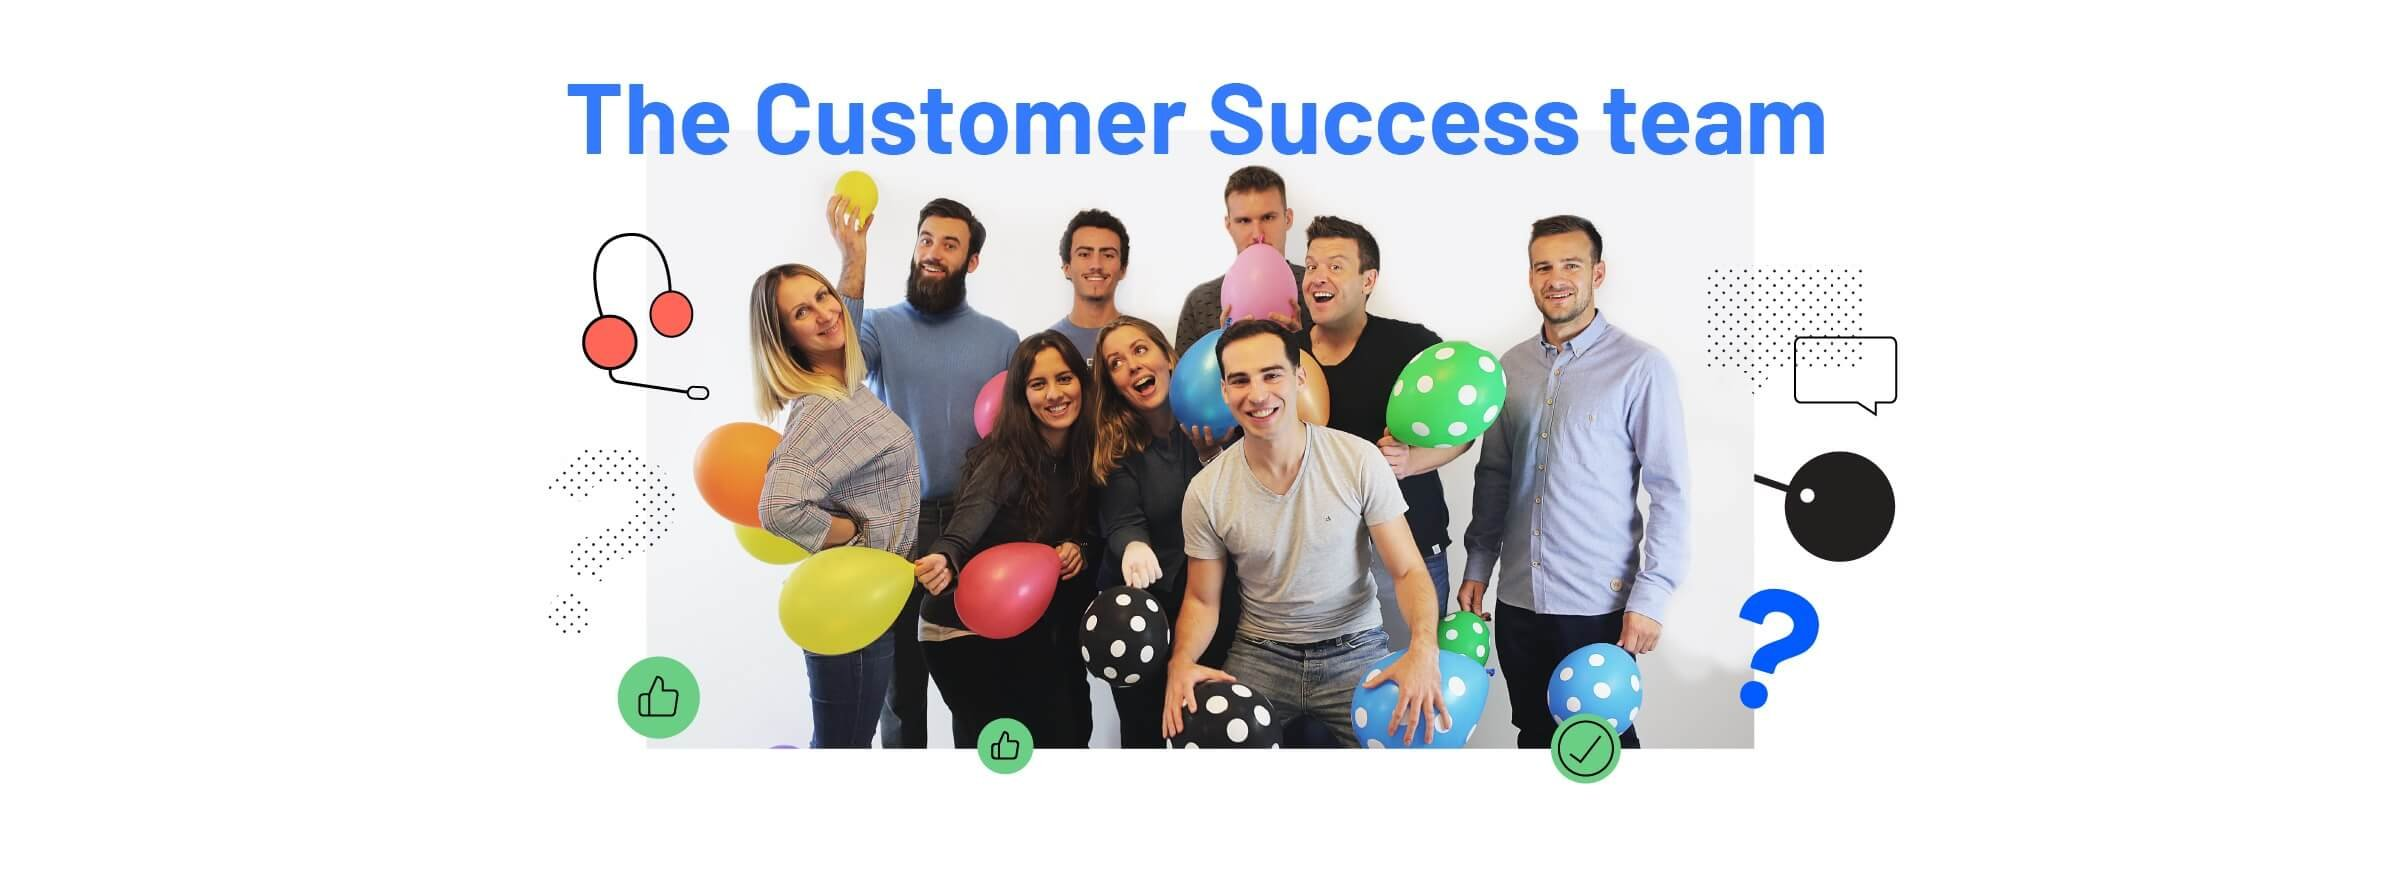 Image of Airtame's all hands customer success team